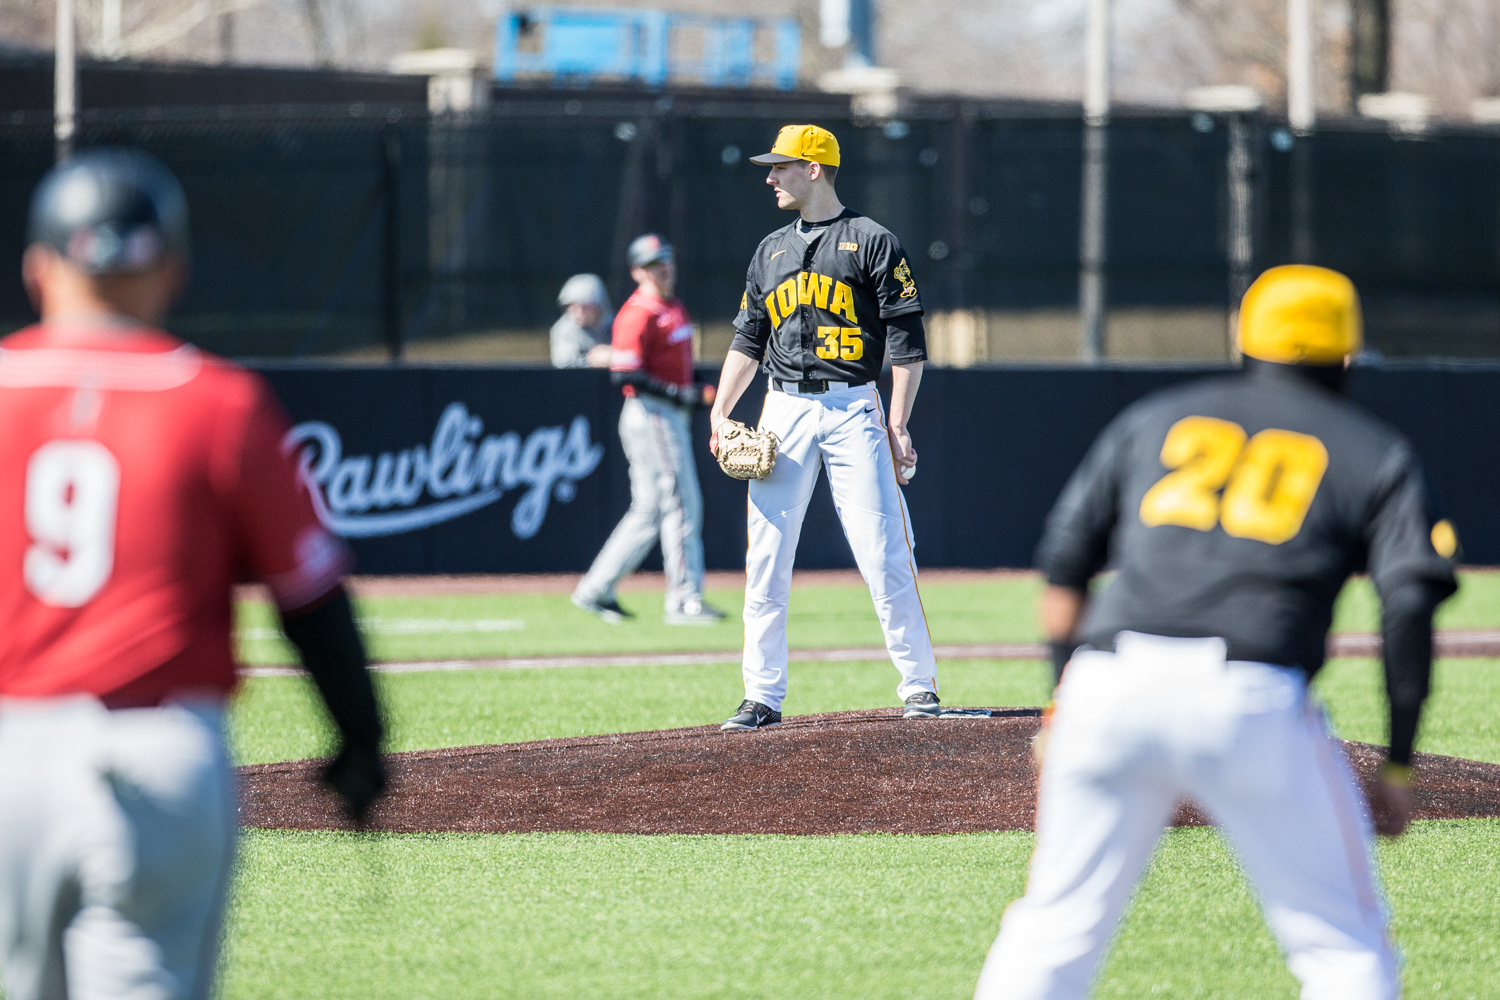 Iowa+pitcher+Cam+Baumann+looks+to+home+plate+during+the+first+game+of+a+baseball+doubleheader+between+Iowa+and+Cal-State+Northridge+at+Duane+Banks+Field+on+Sunday%2C+March+17%2C+2019.+The+Hawkeyes+defeated+the+Matadors%2C+5-4.